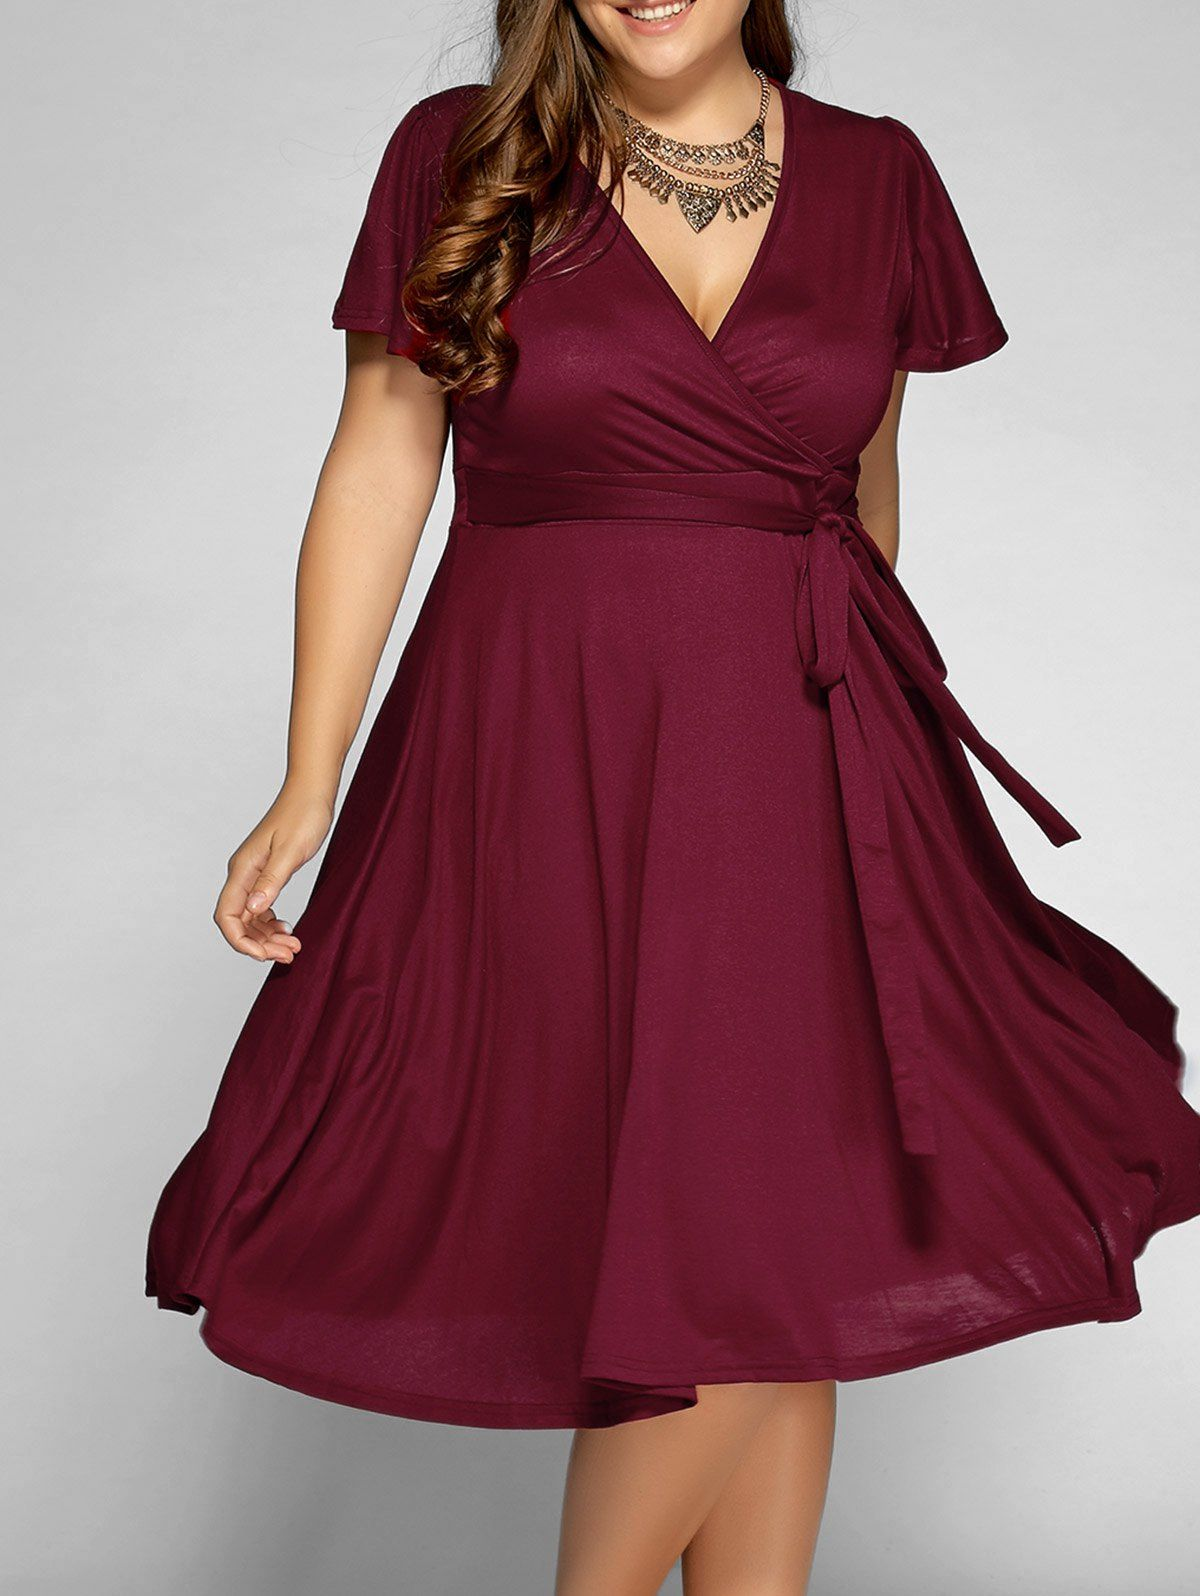 14.03 for Front Tie Swing Surplice Plus Size Dress in Wine Red ... d80518d46e3c